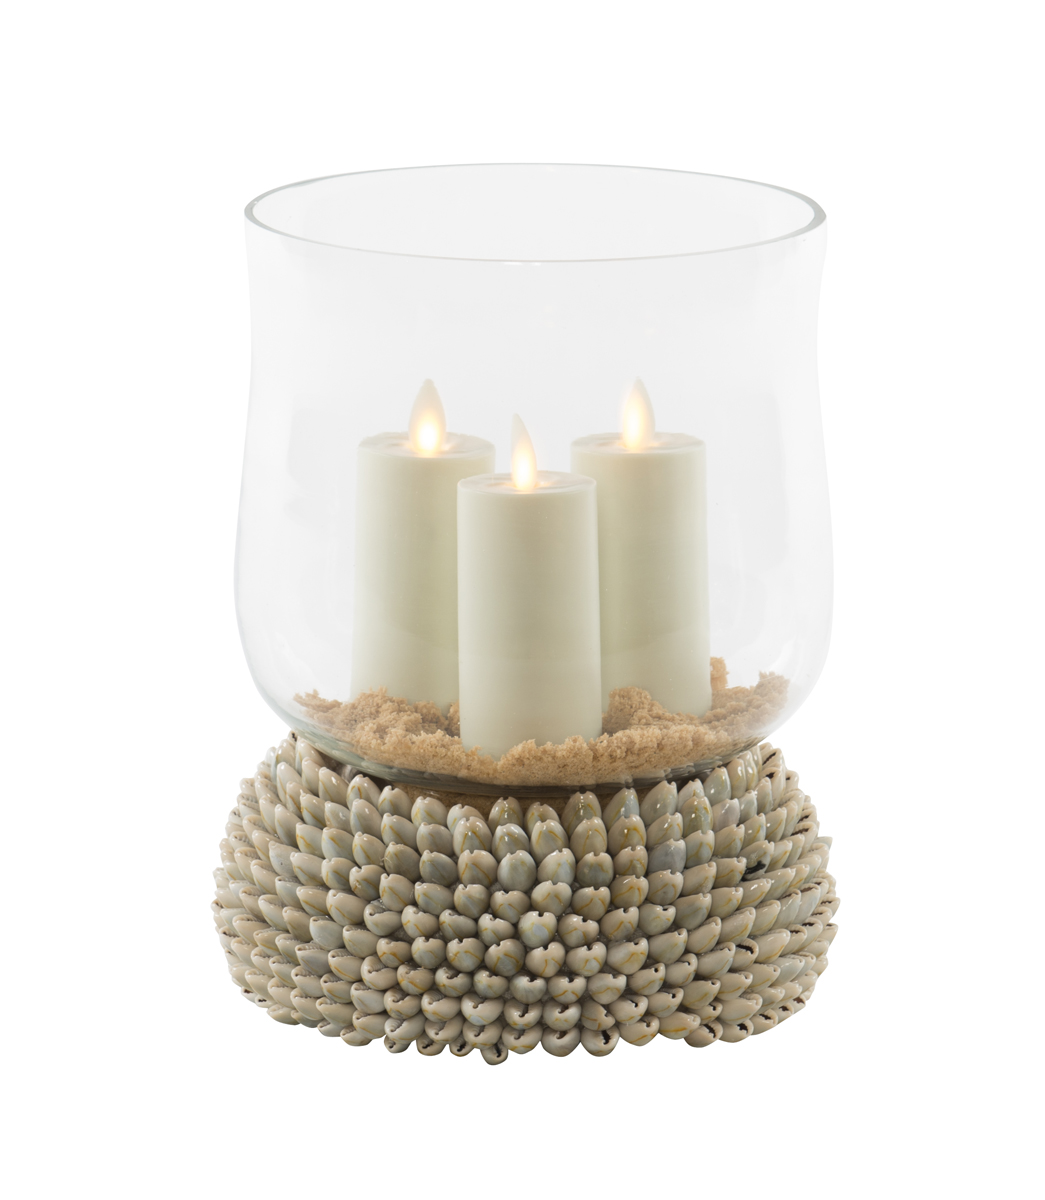 sc 1 st  Accessories Abroad & CYPERIA ANNALUS SHELL CANDLE HOLDER - SMALL